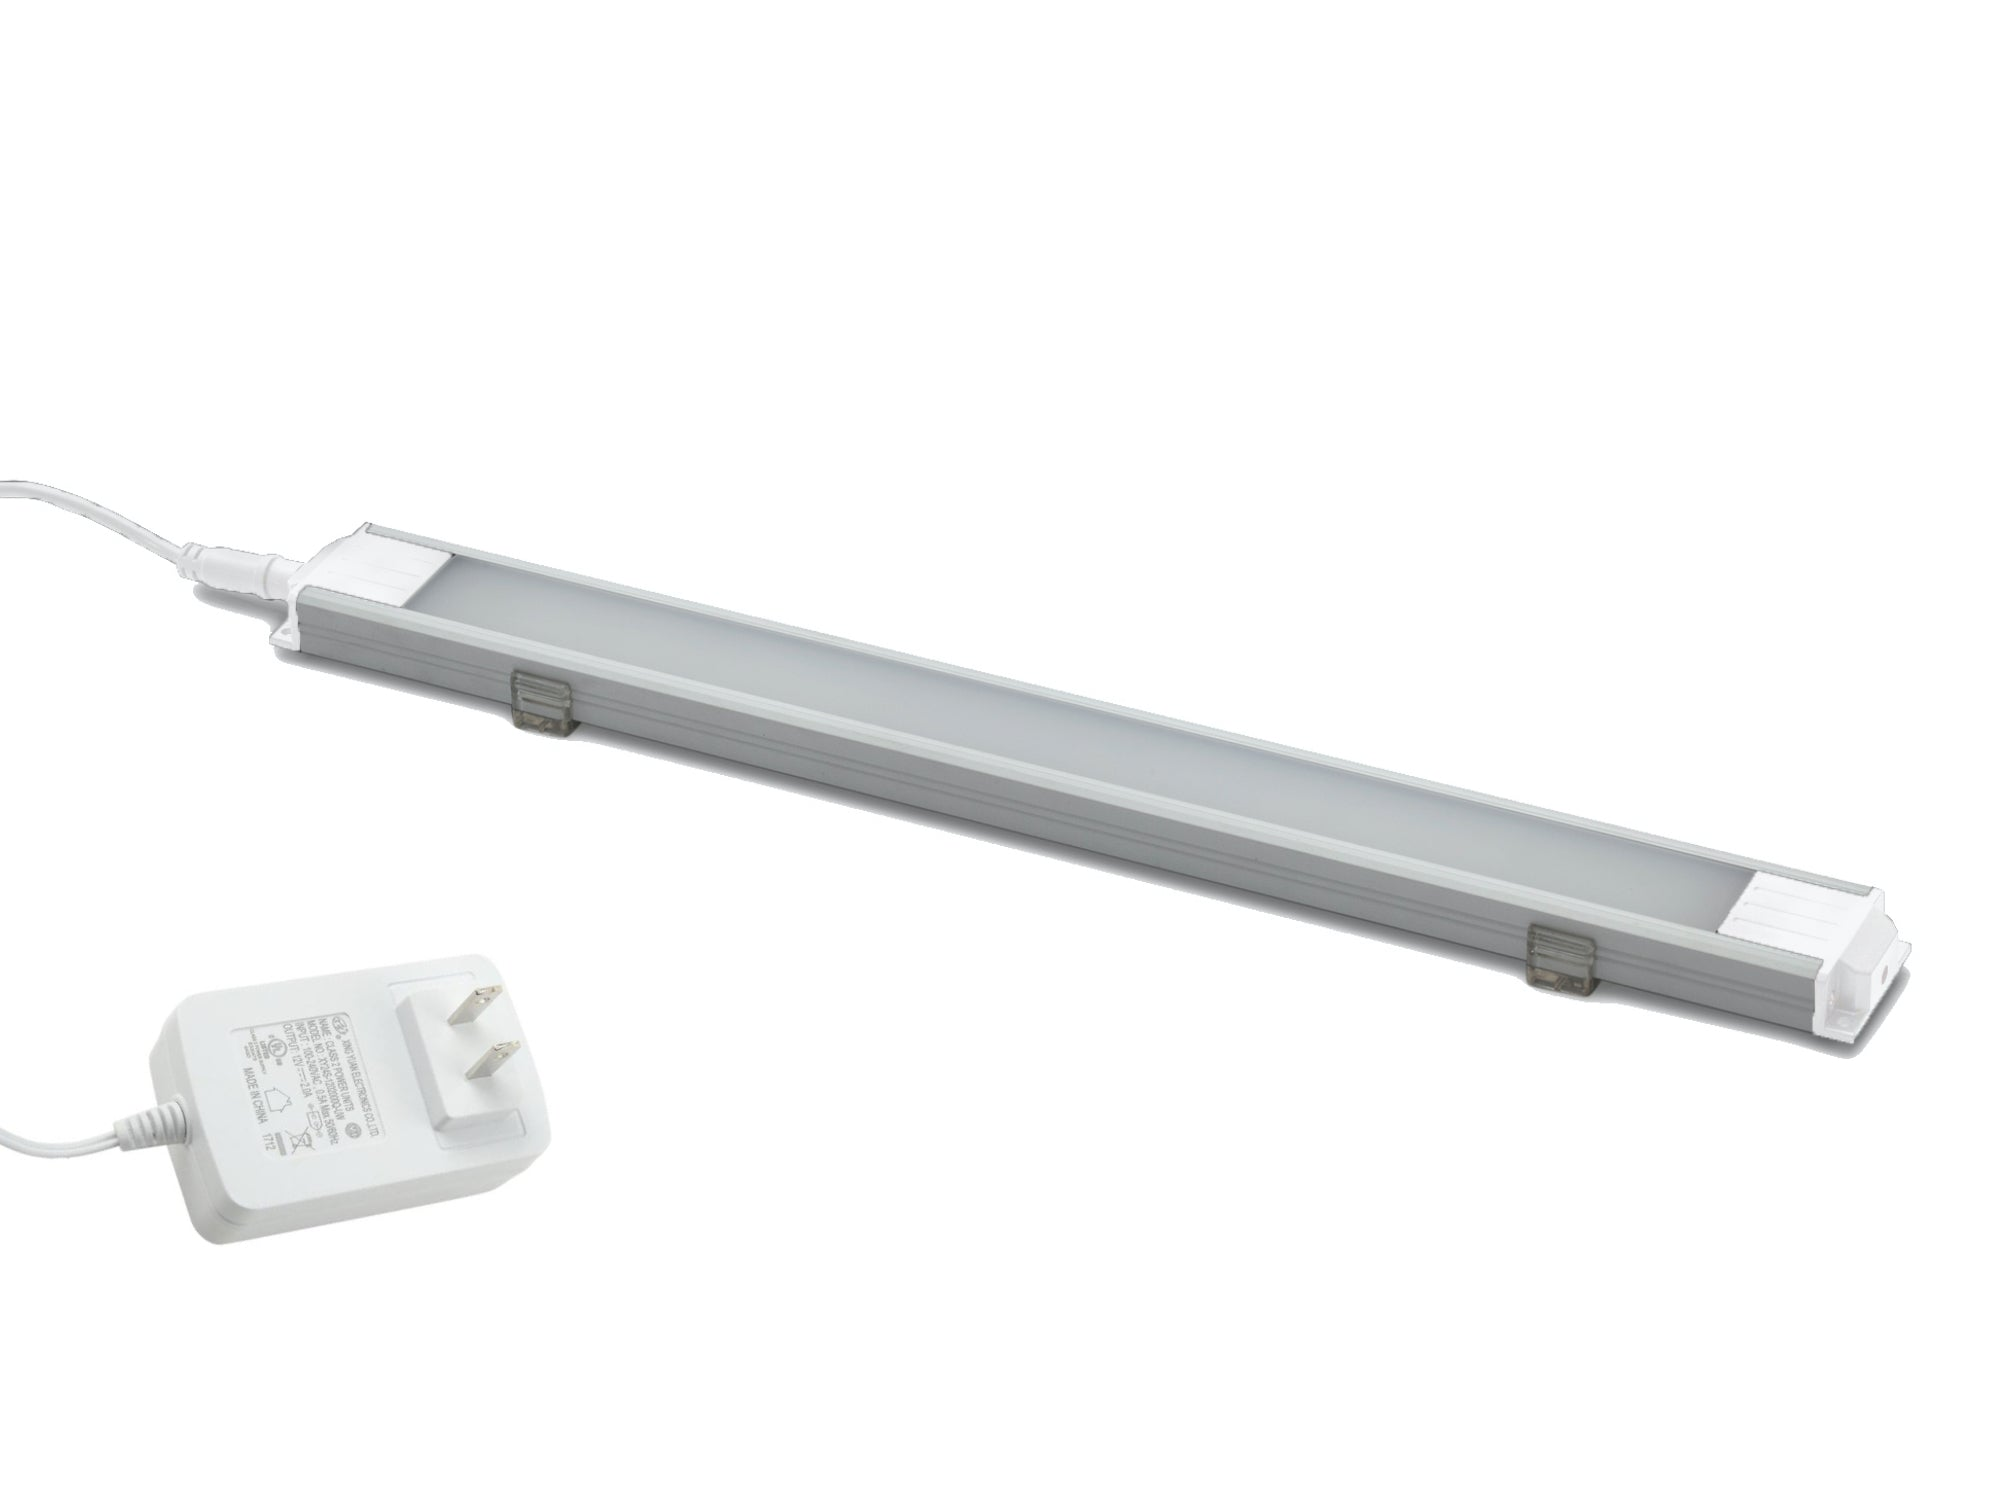 4000K LED Lights (1 x LED with Adapters, 1 x LED with Connector Cable)